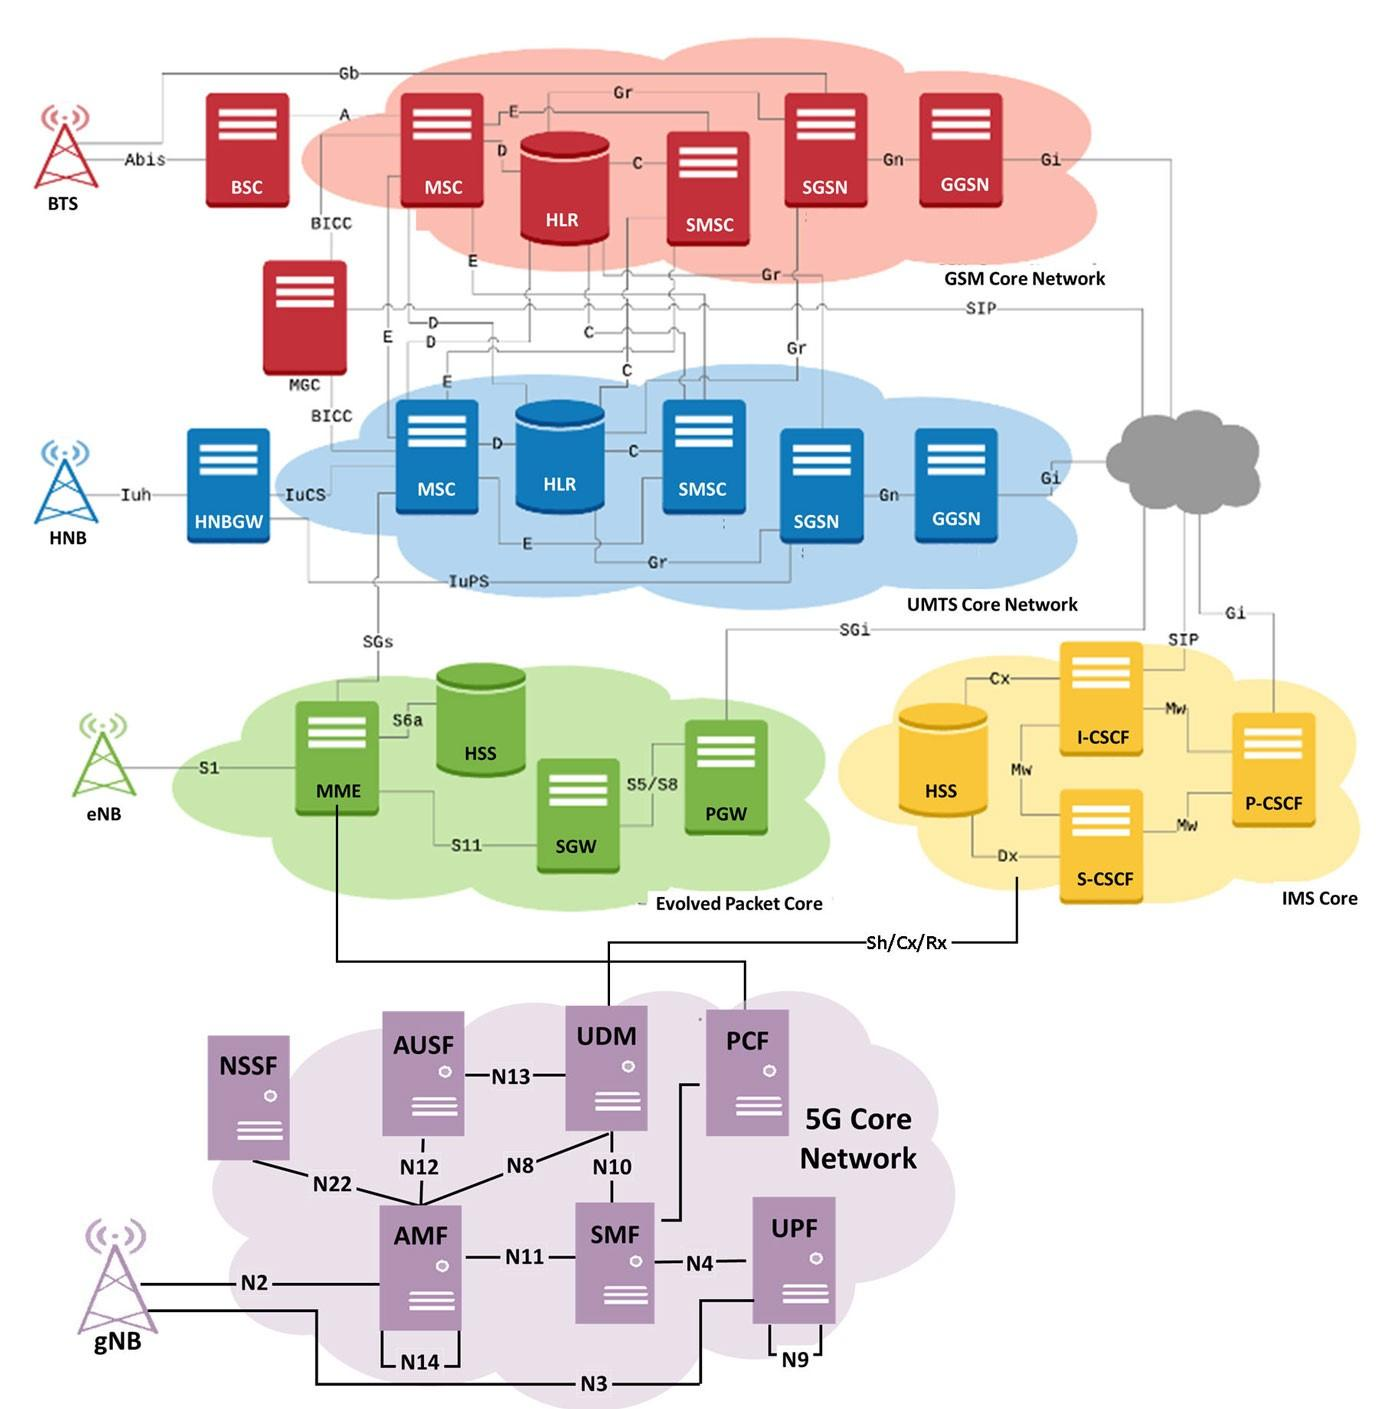 End-to-End Wireless (2G/3G/4G/5G) Network architecture diagram